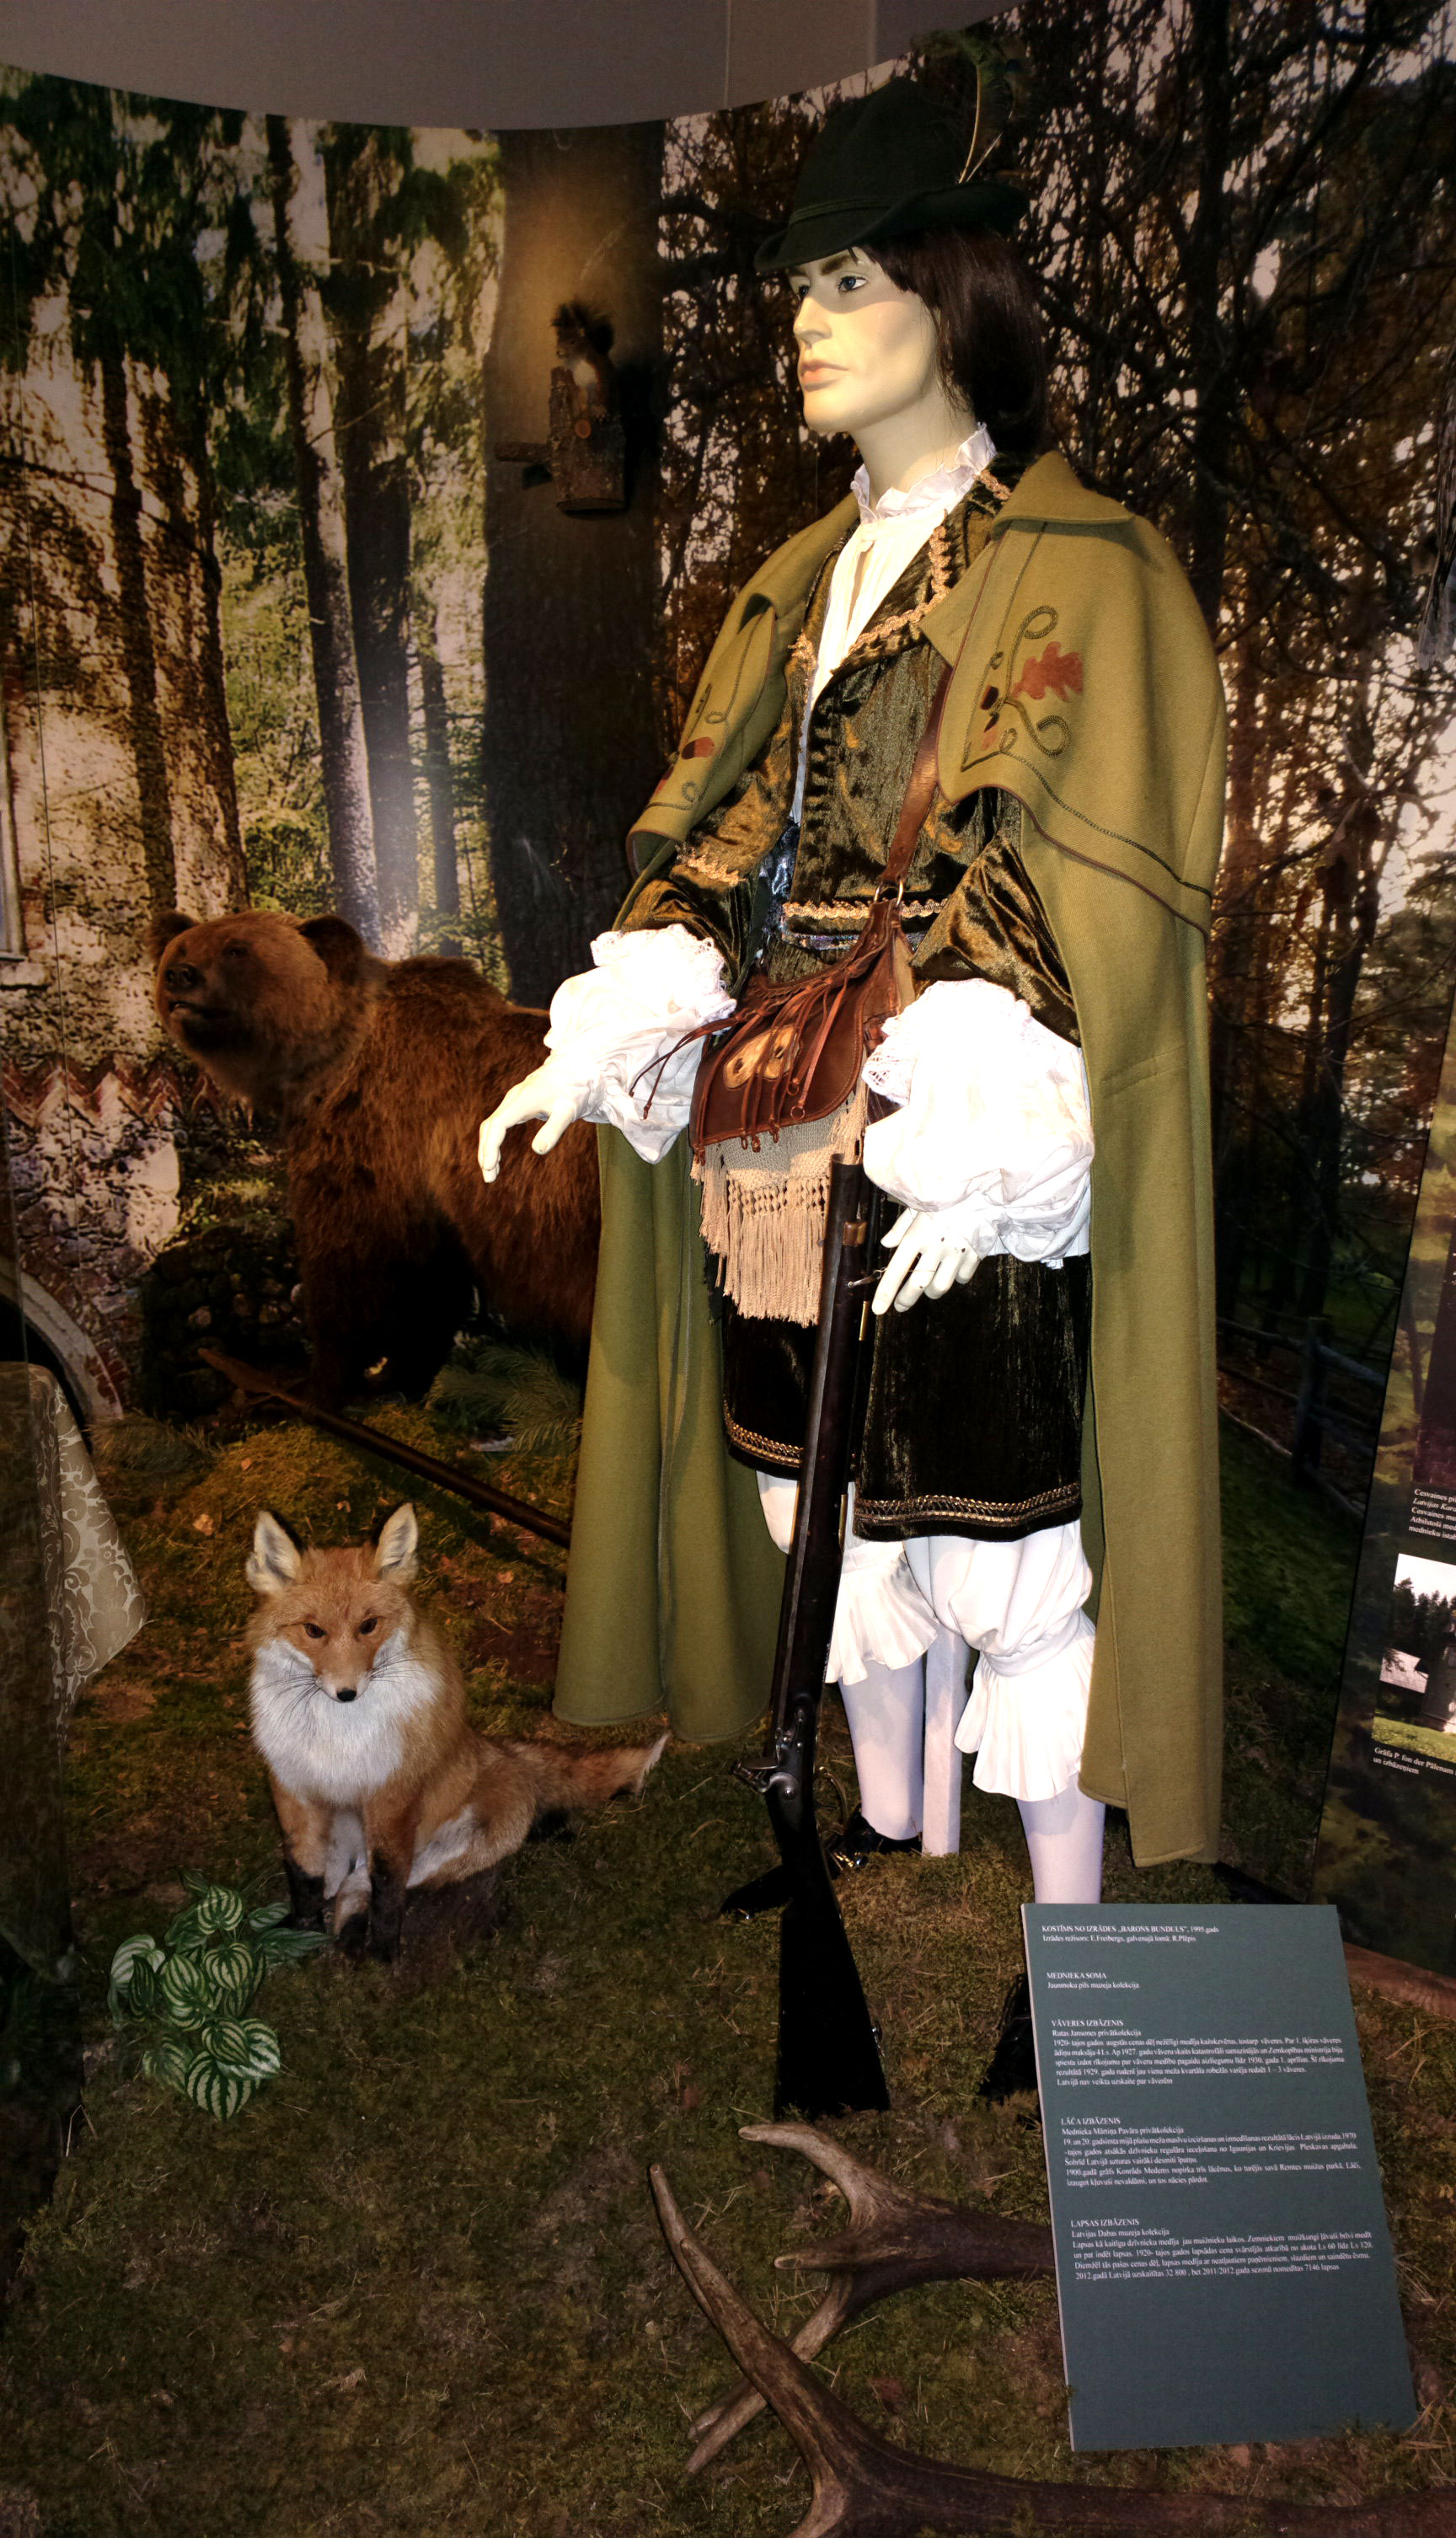 Proper attire for wildlife hunting shown in the Latvian war museum in Riga.